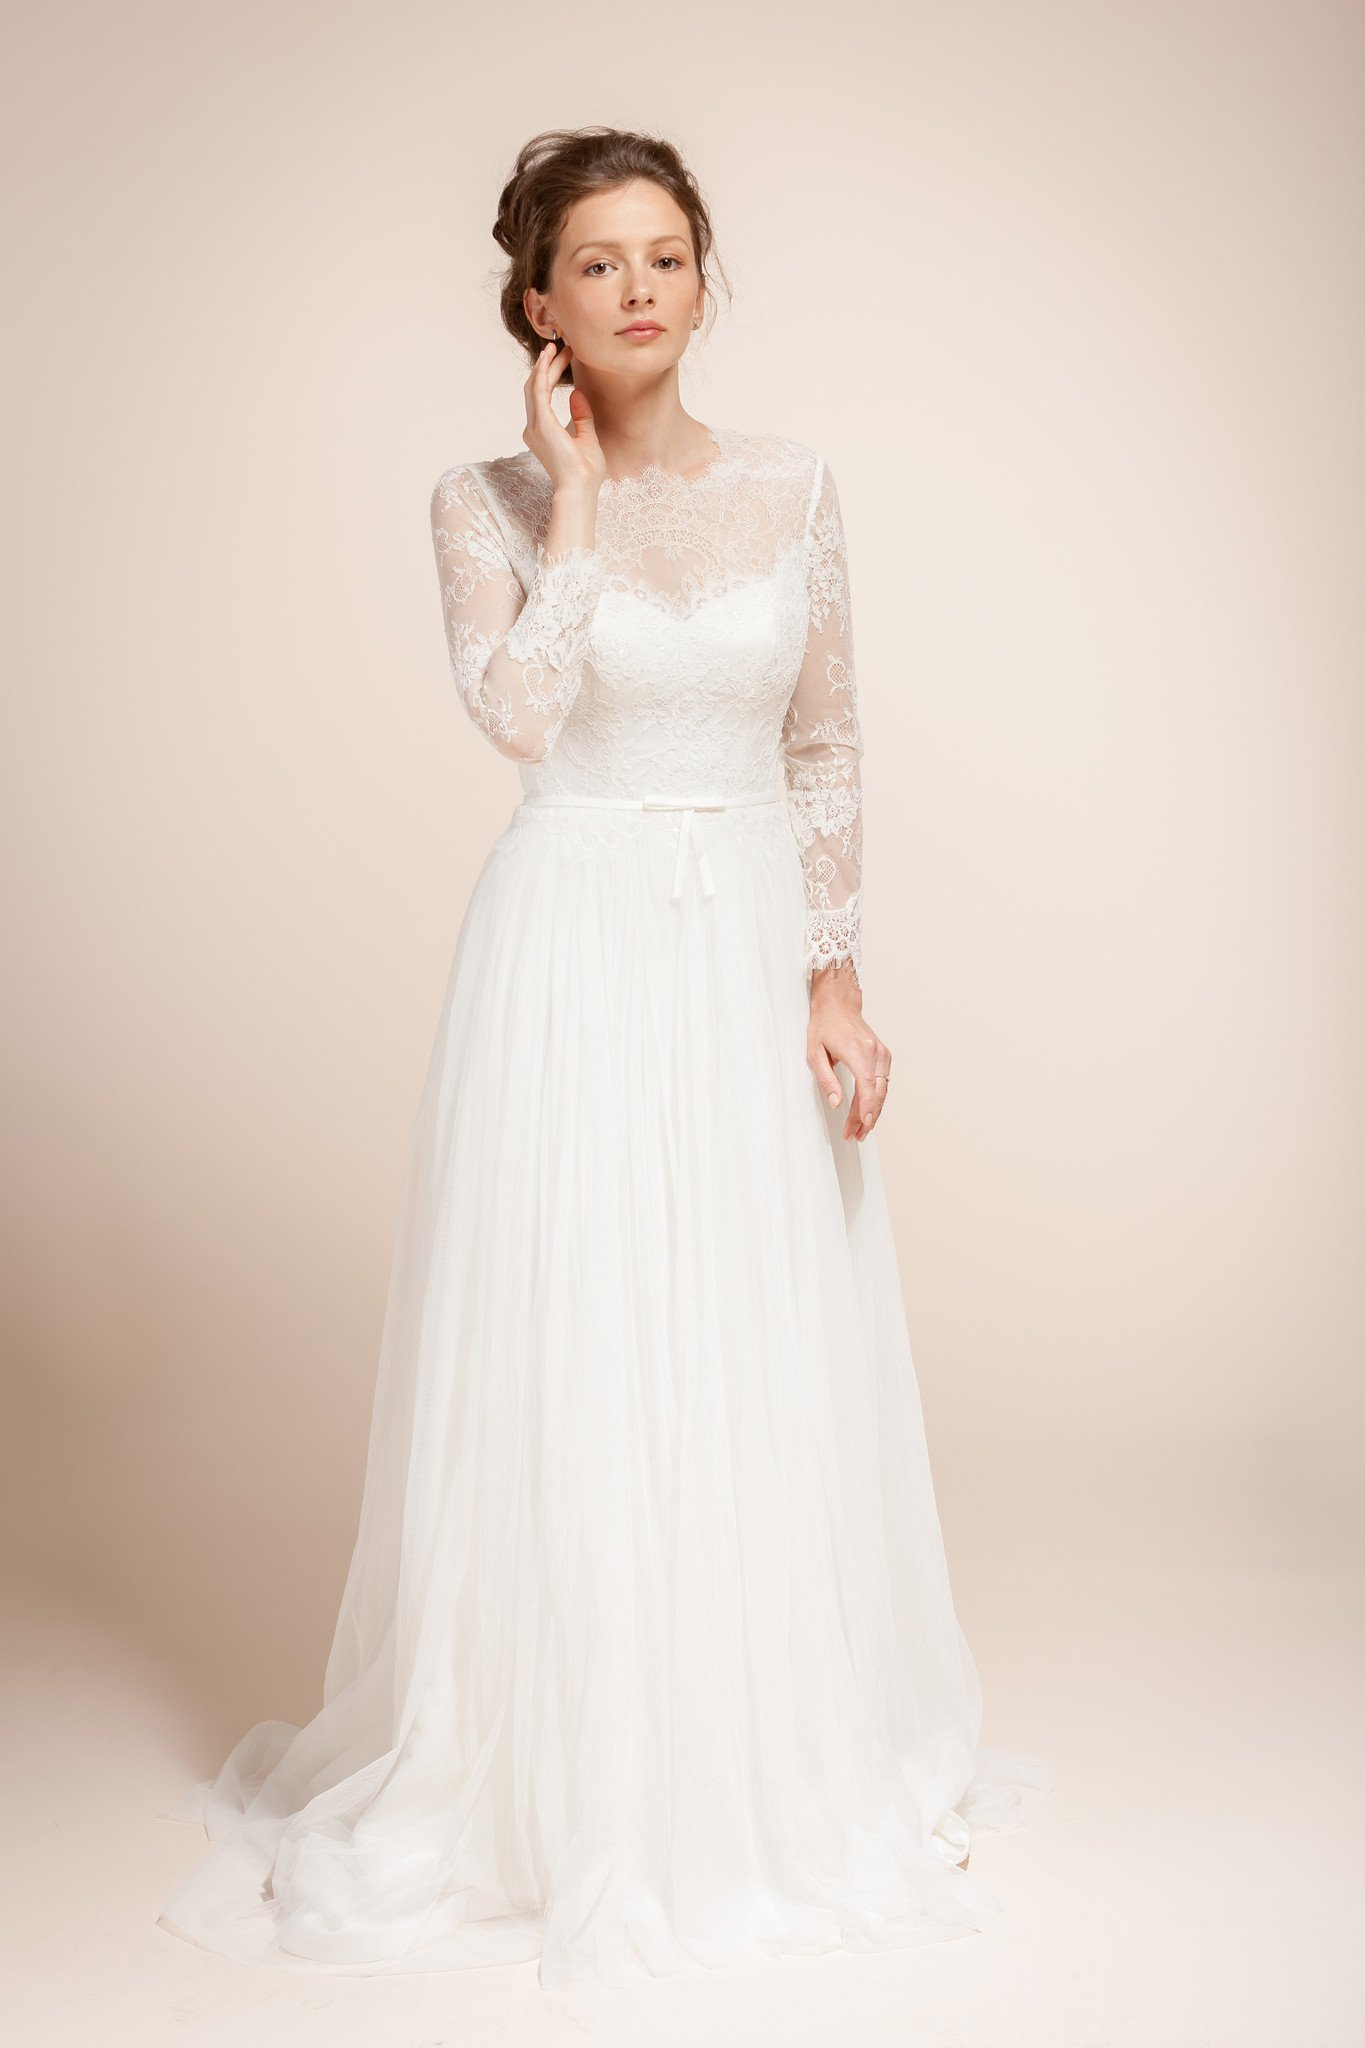 Wedding dress with delicate lace